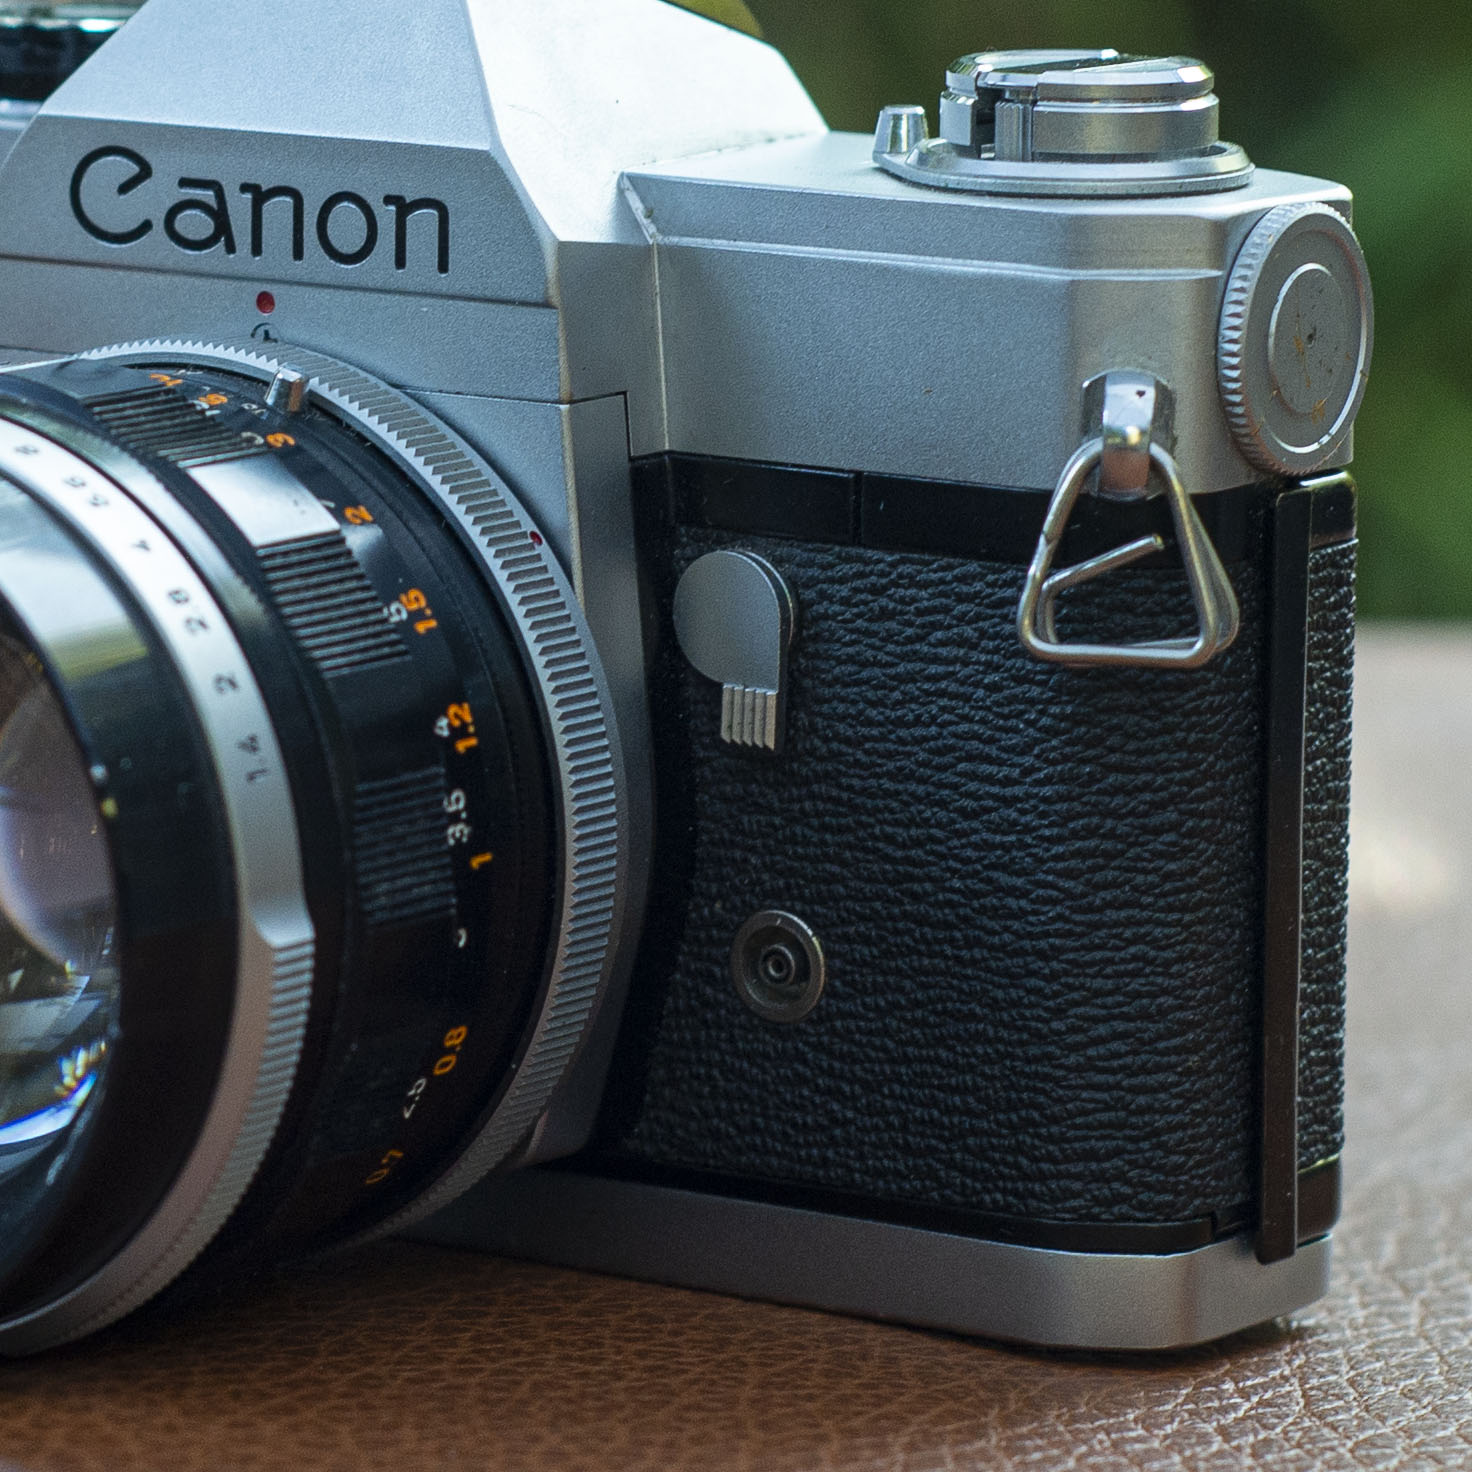 Canon FT Depth of Field preview lever